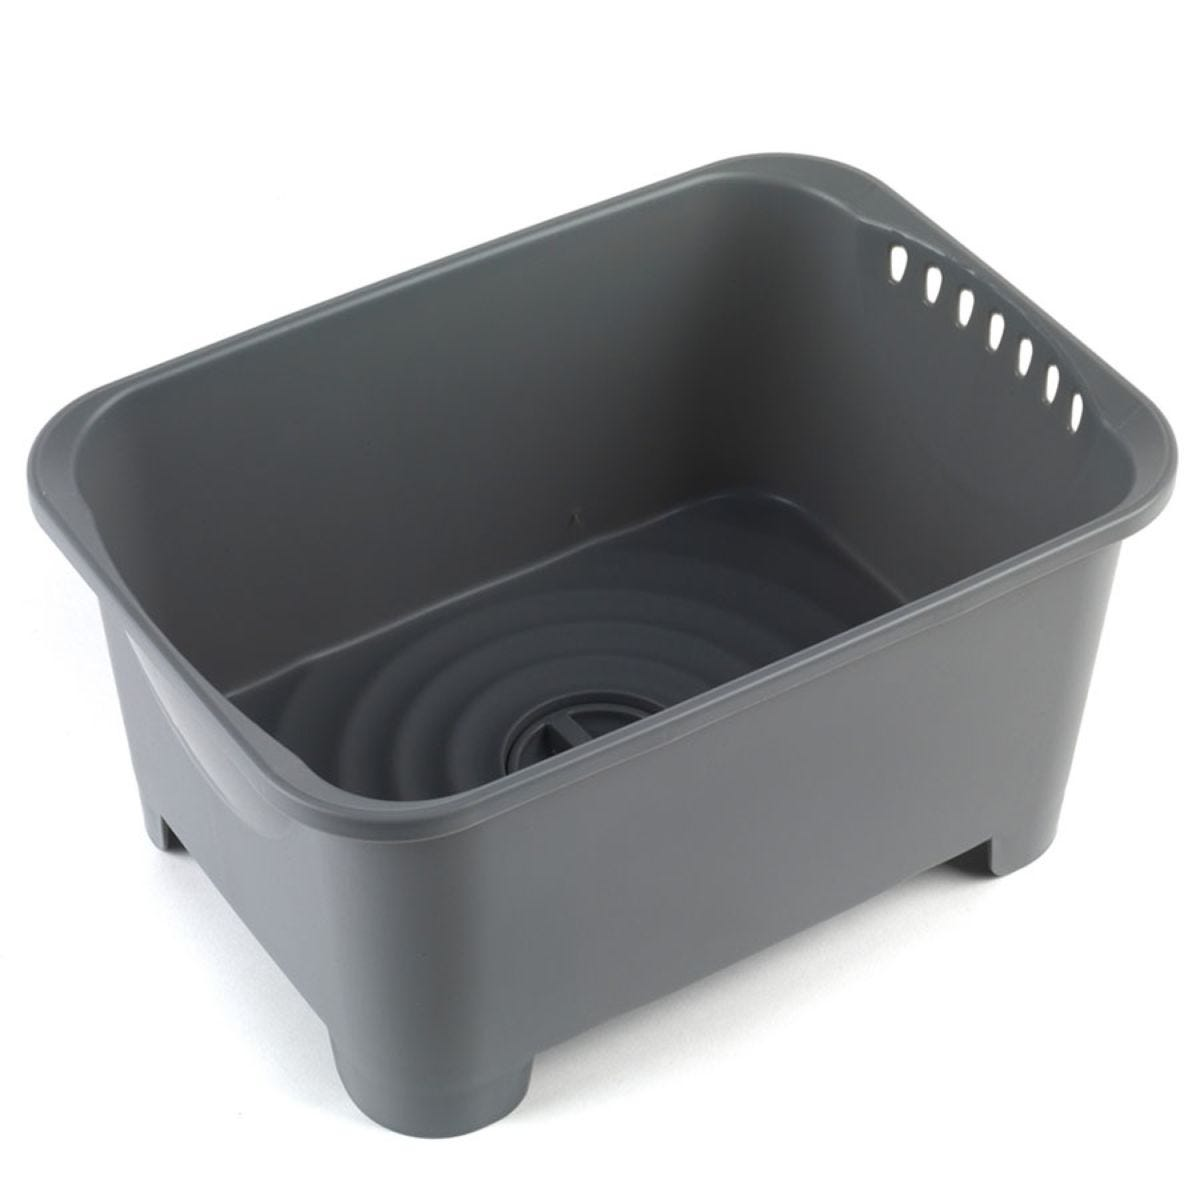 Beldray Washing Up Bowl with Drainer - Grey